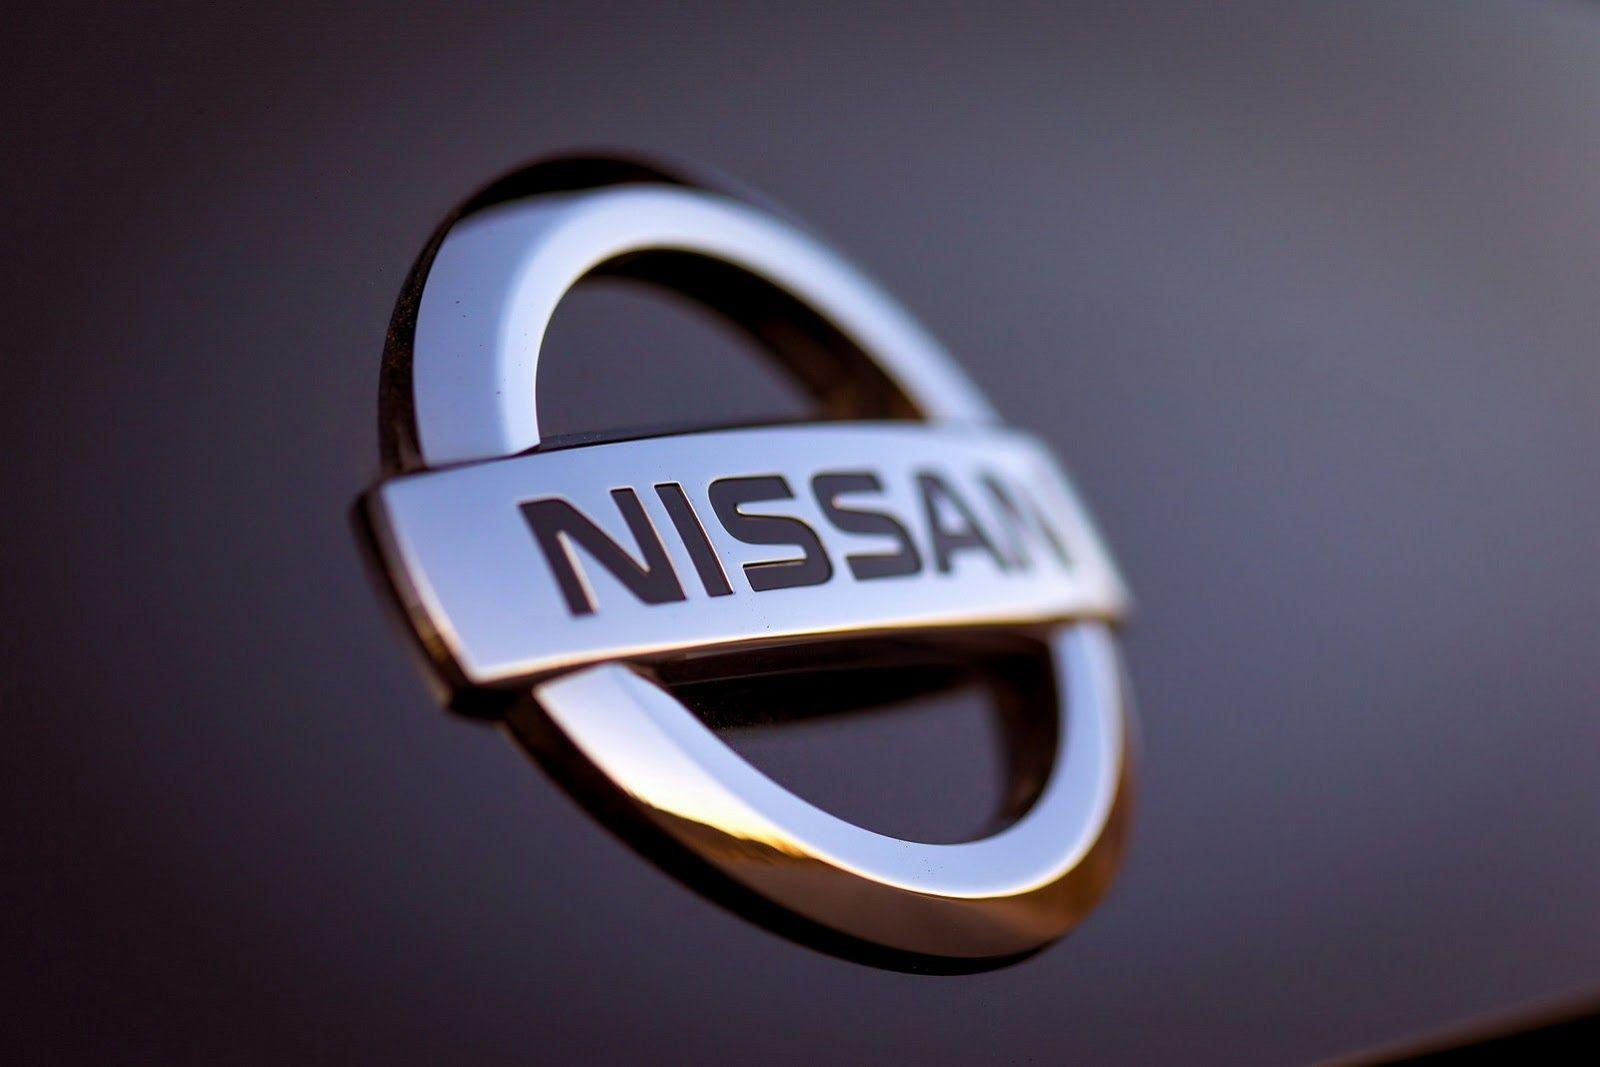 Nissan Logo Wallpaper 3D HD #7811 Wallpaper | Wallshed.